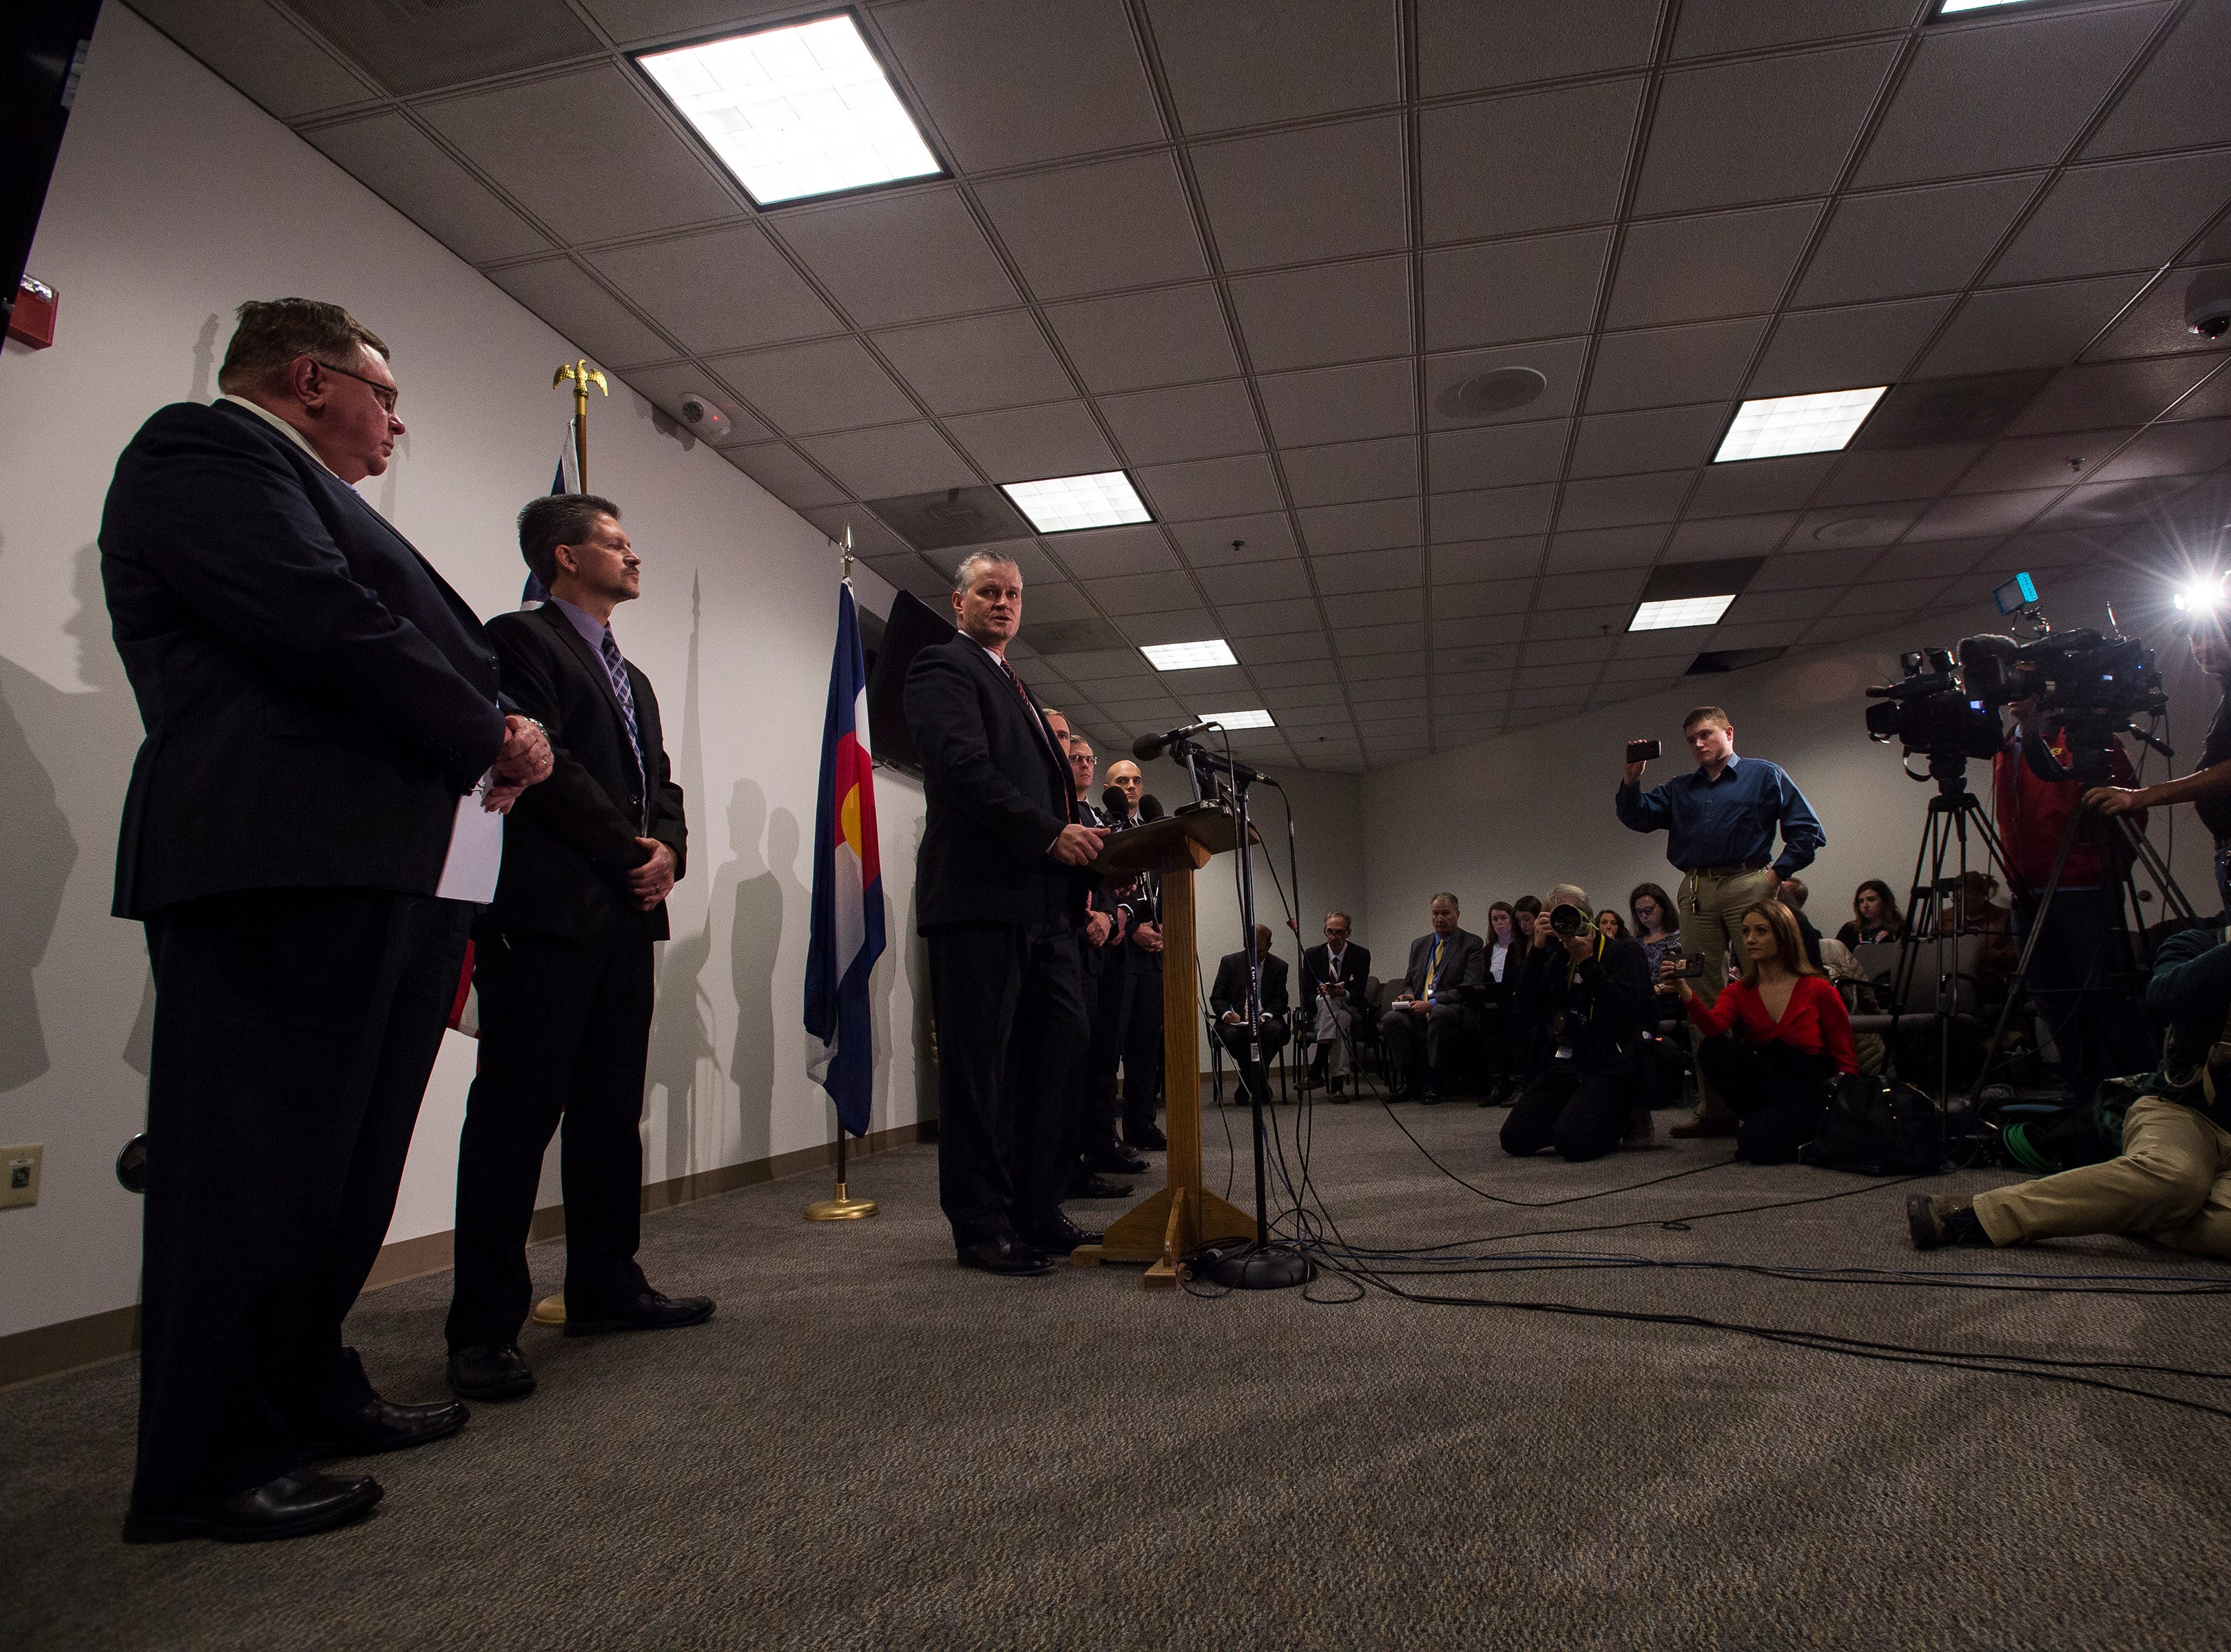 Weld County district attorney Michael J. Rourke speaks to members of the media during a press conference after the sentencing of Christopher Watts on Monday, Nov. 19, 2018, at the Weld County courthouse in Greeley, Colo.